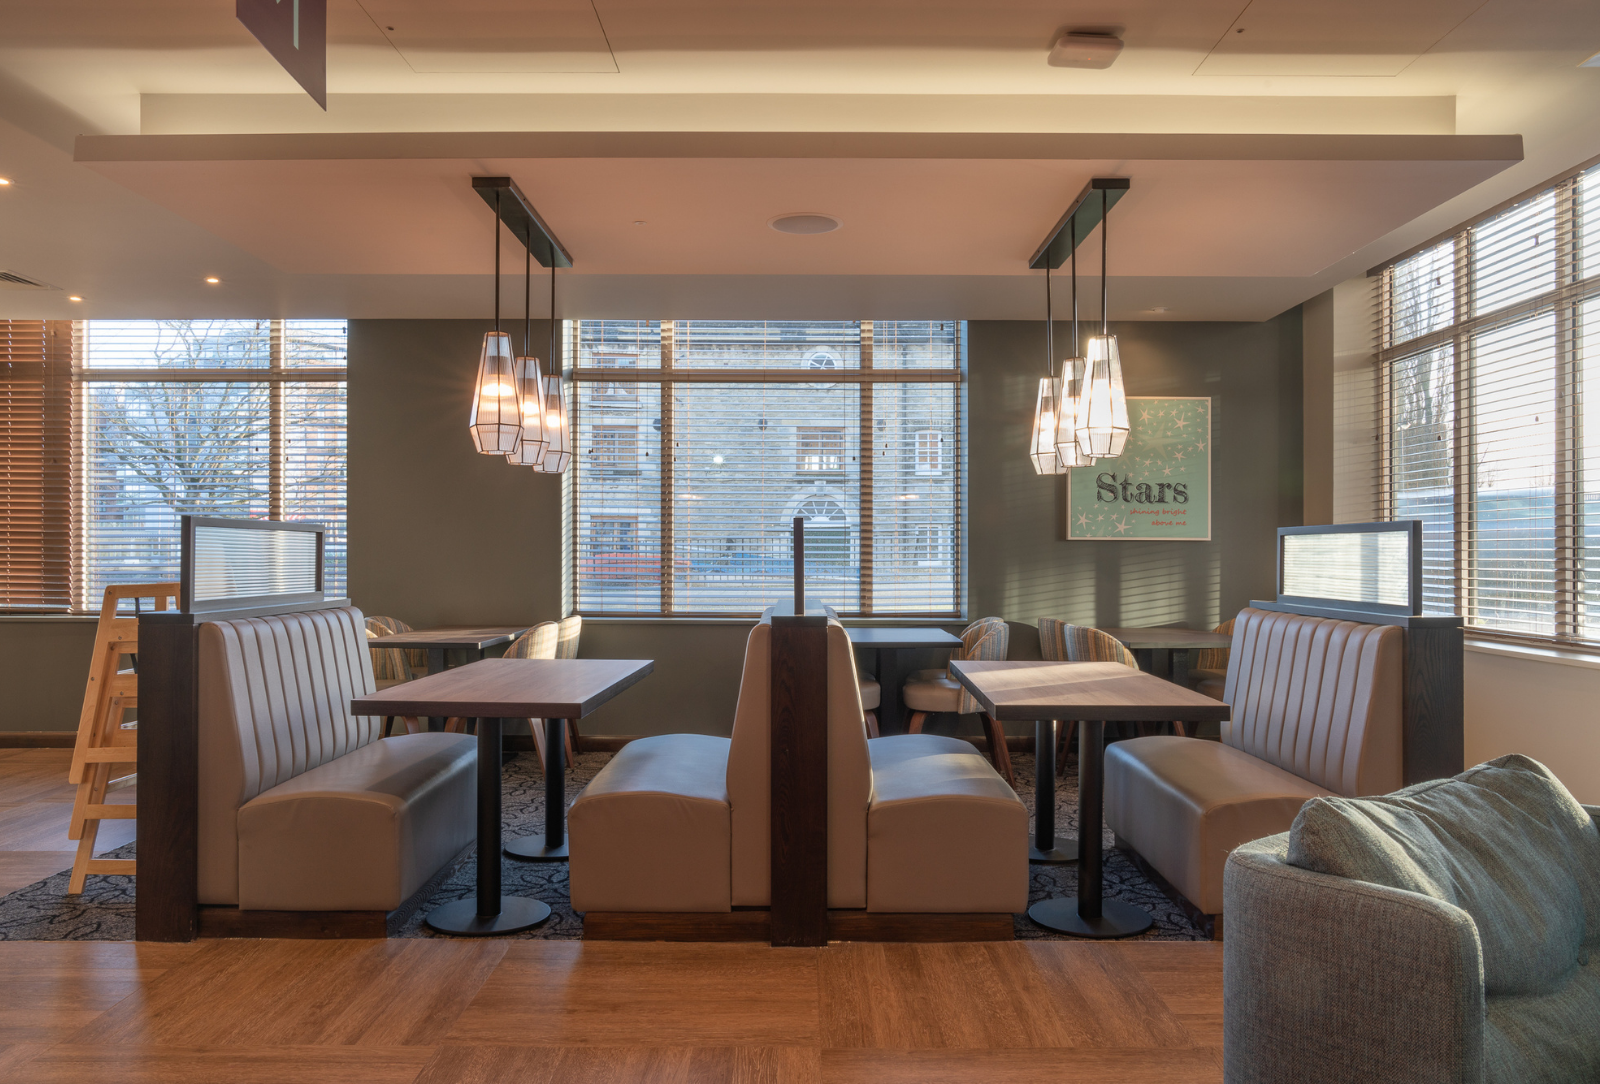 Commercial joinery at Premier Inn seating